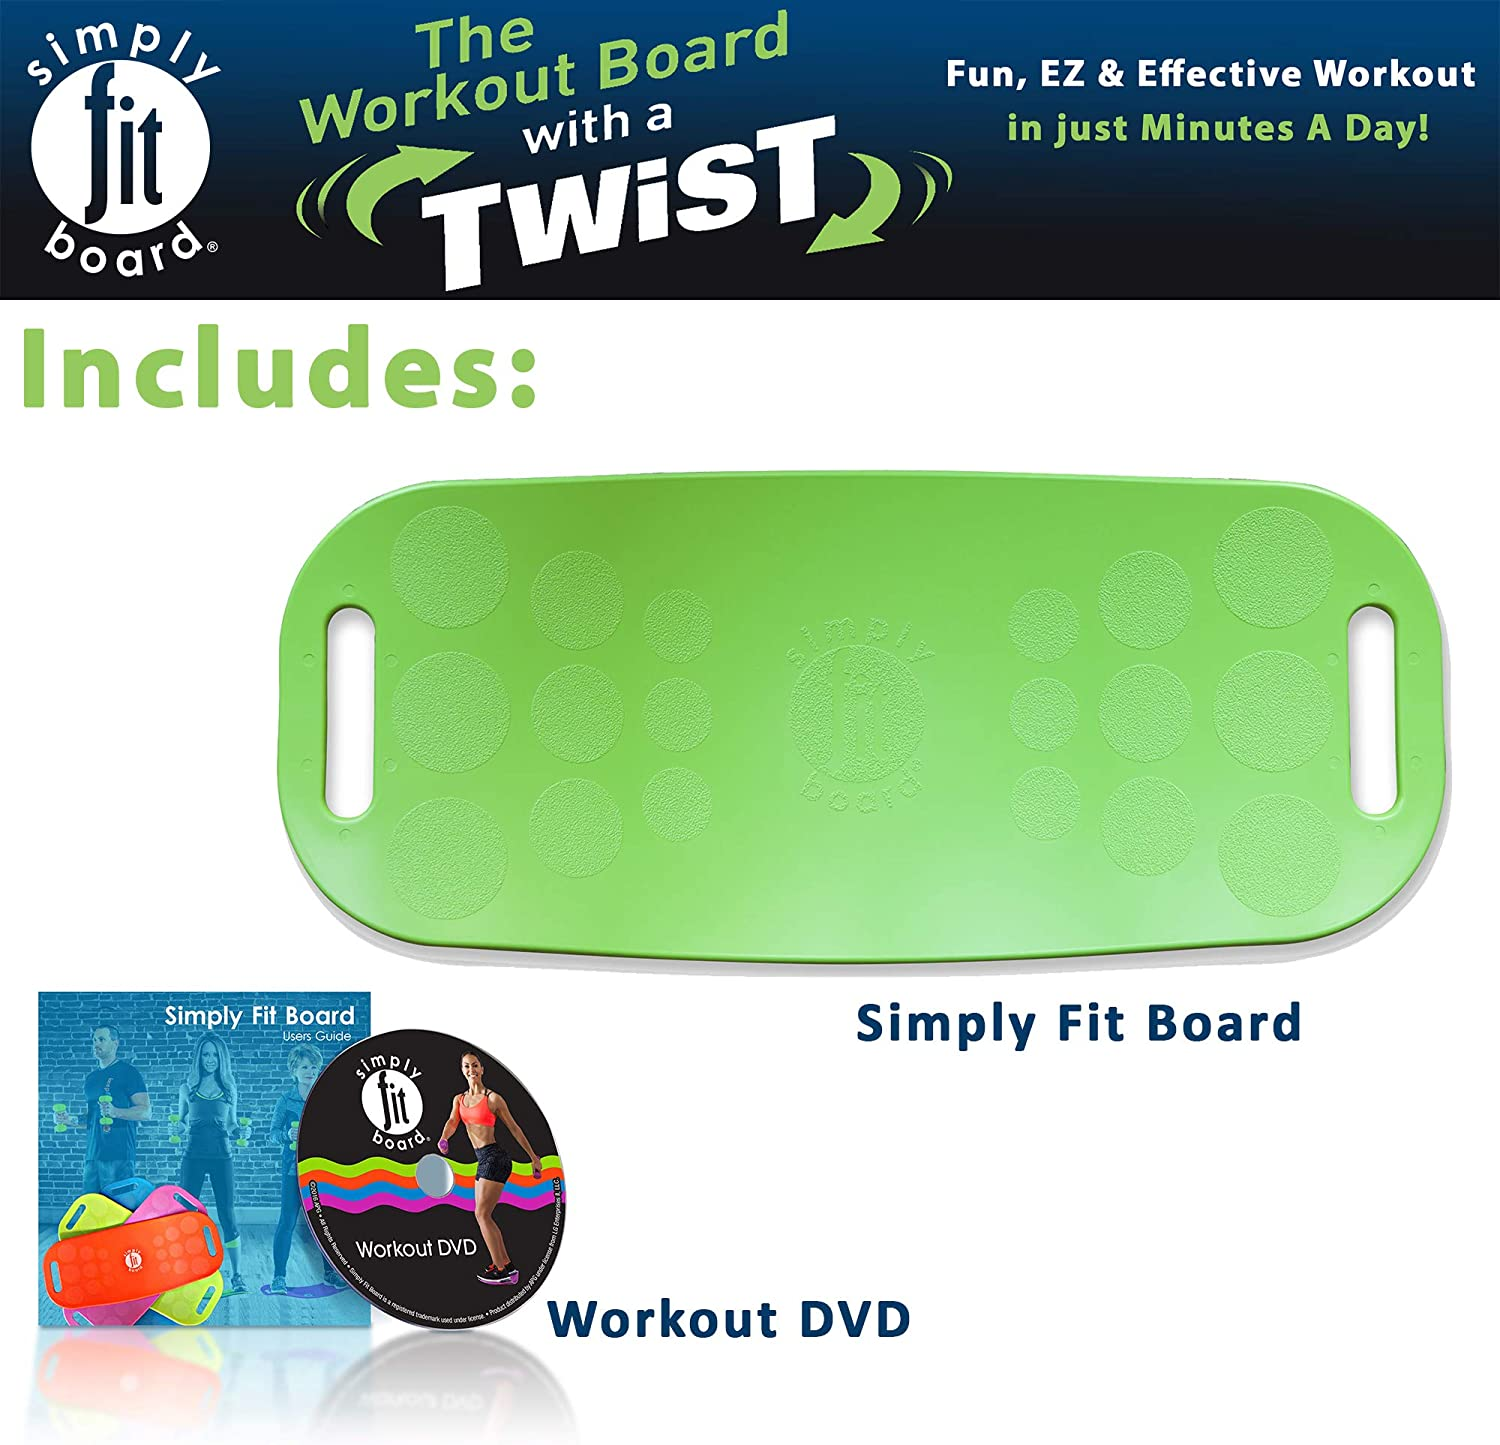 Simply Fit 30043 The Abs Legs Core Workout Balance Board (Green) : Sports & Outdoors